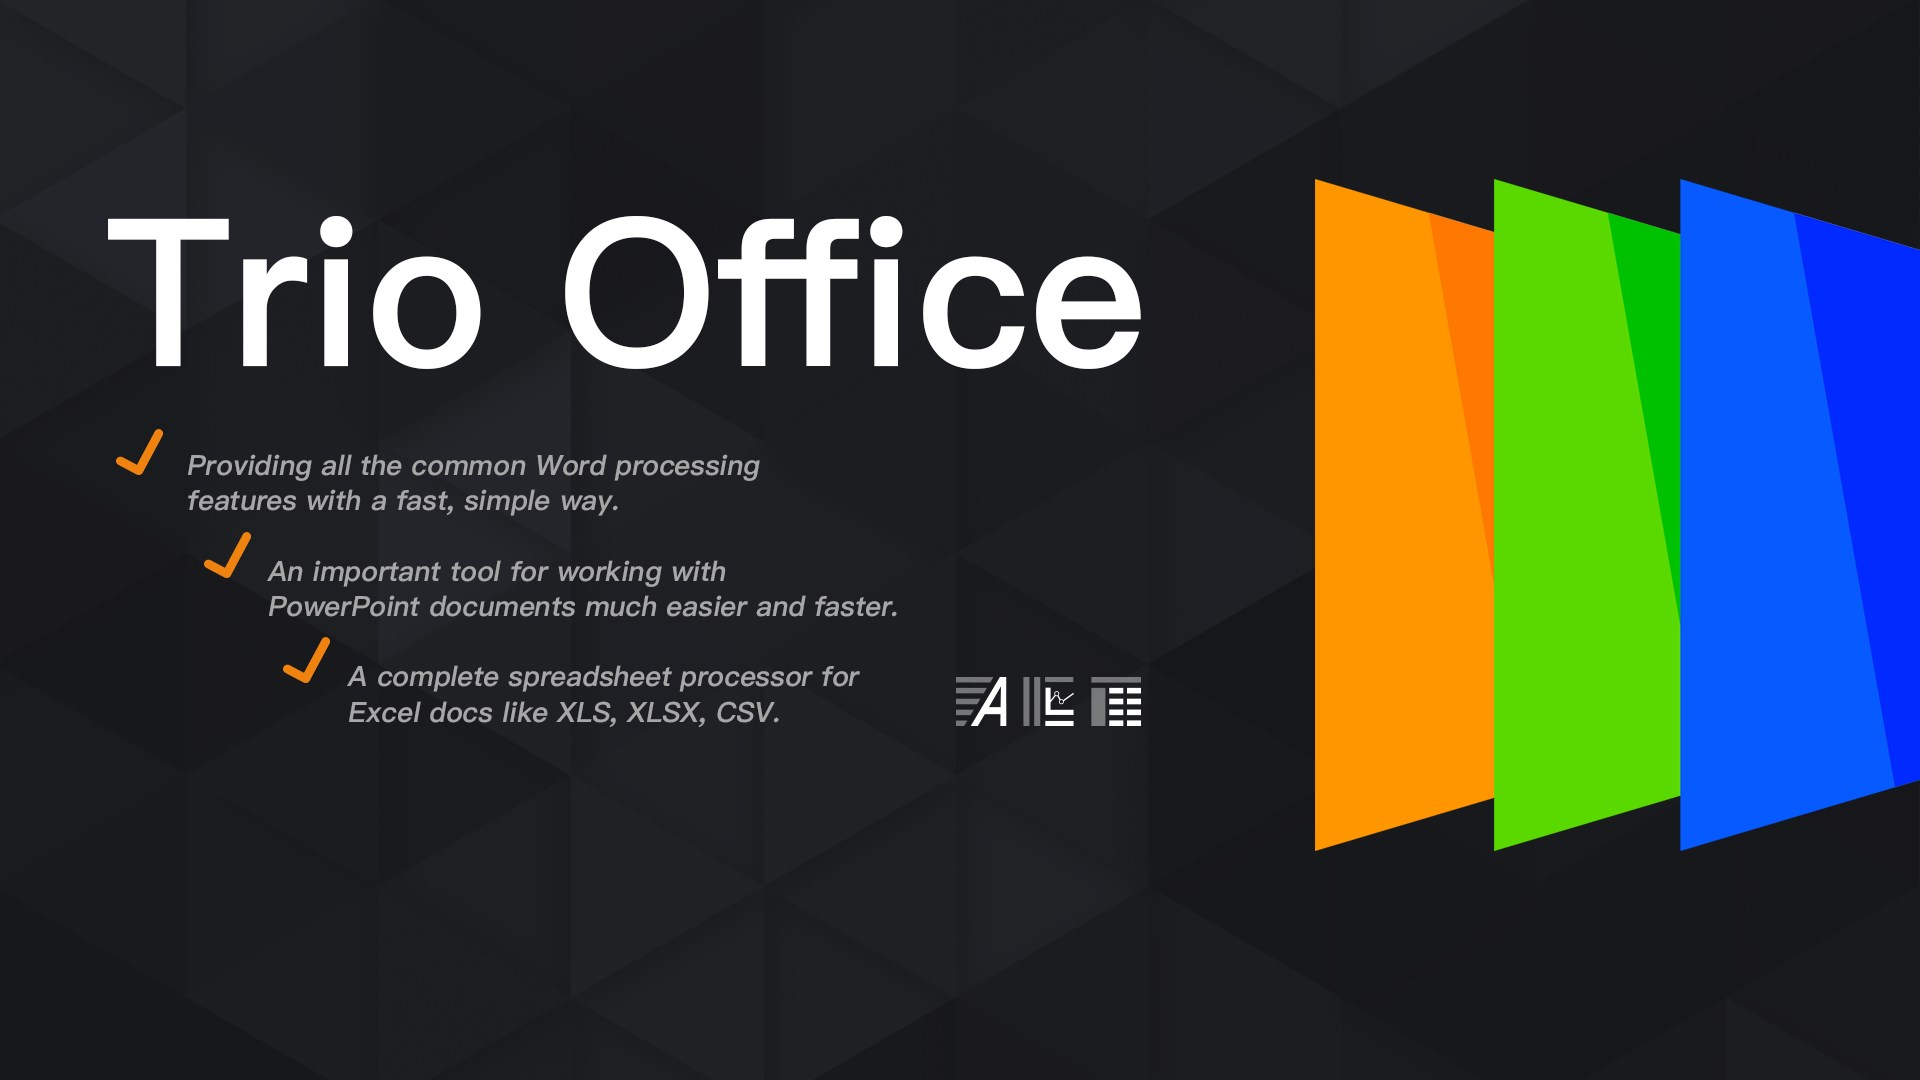 Get Trio Office: Word, Slide, Spreadsheet & PDF Compatible.